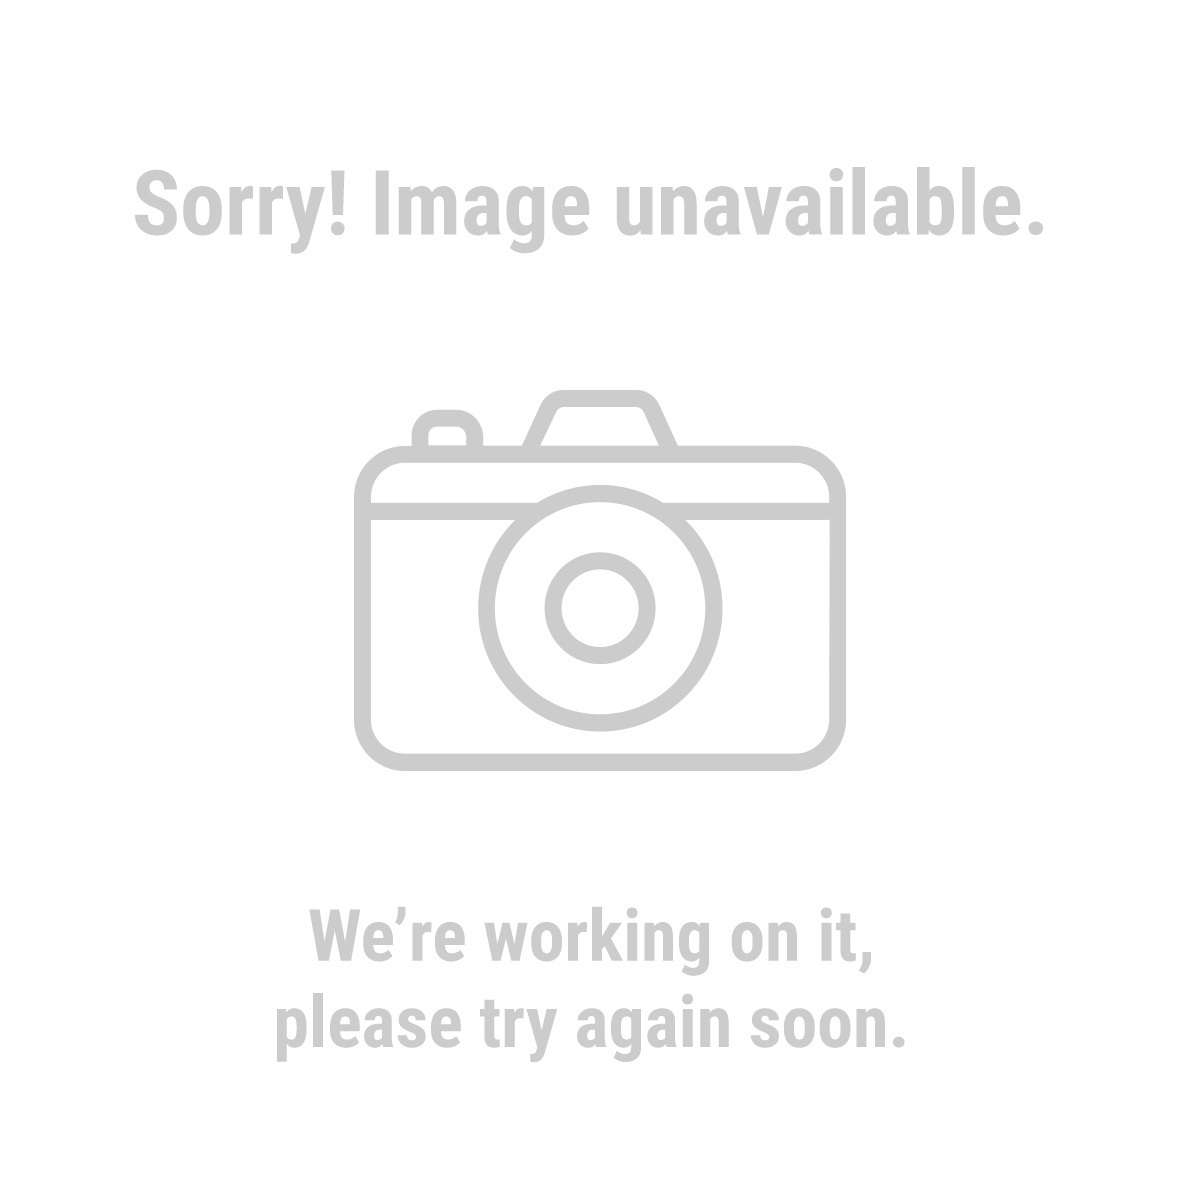 cheap wood lathes for sale